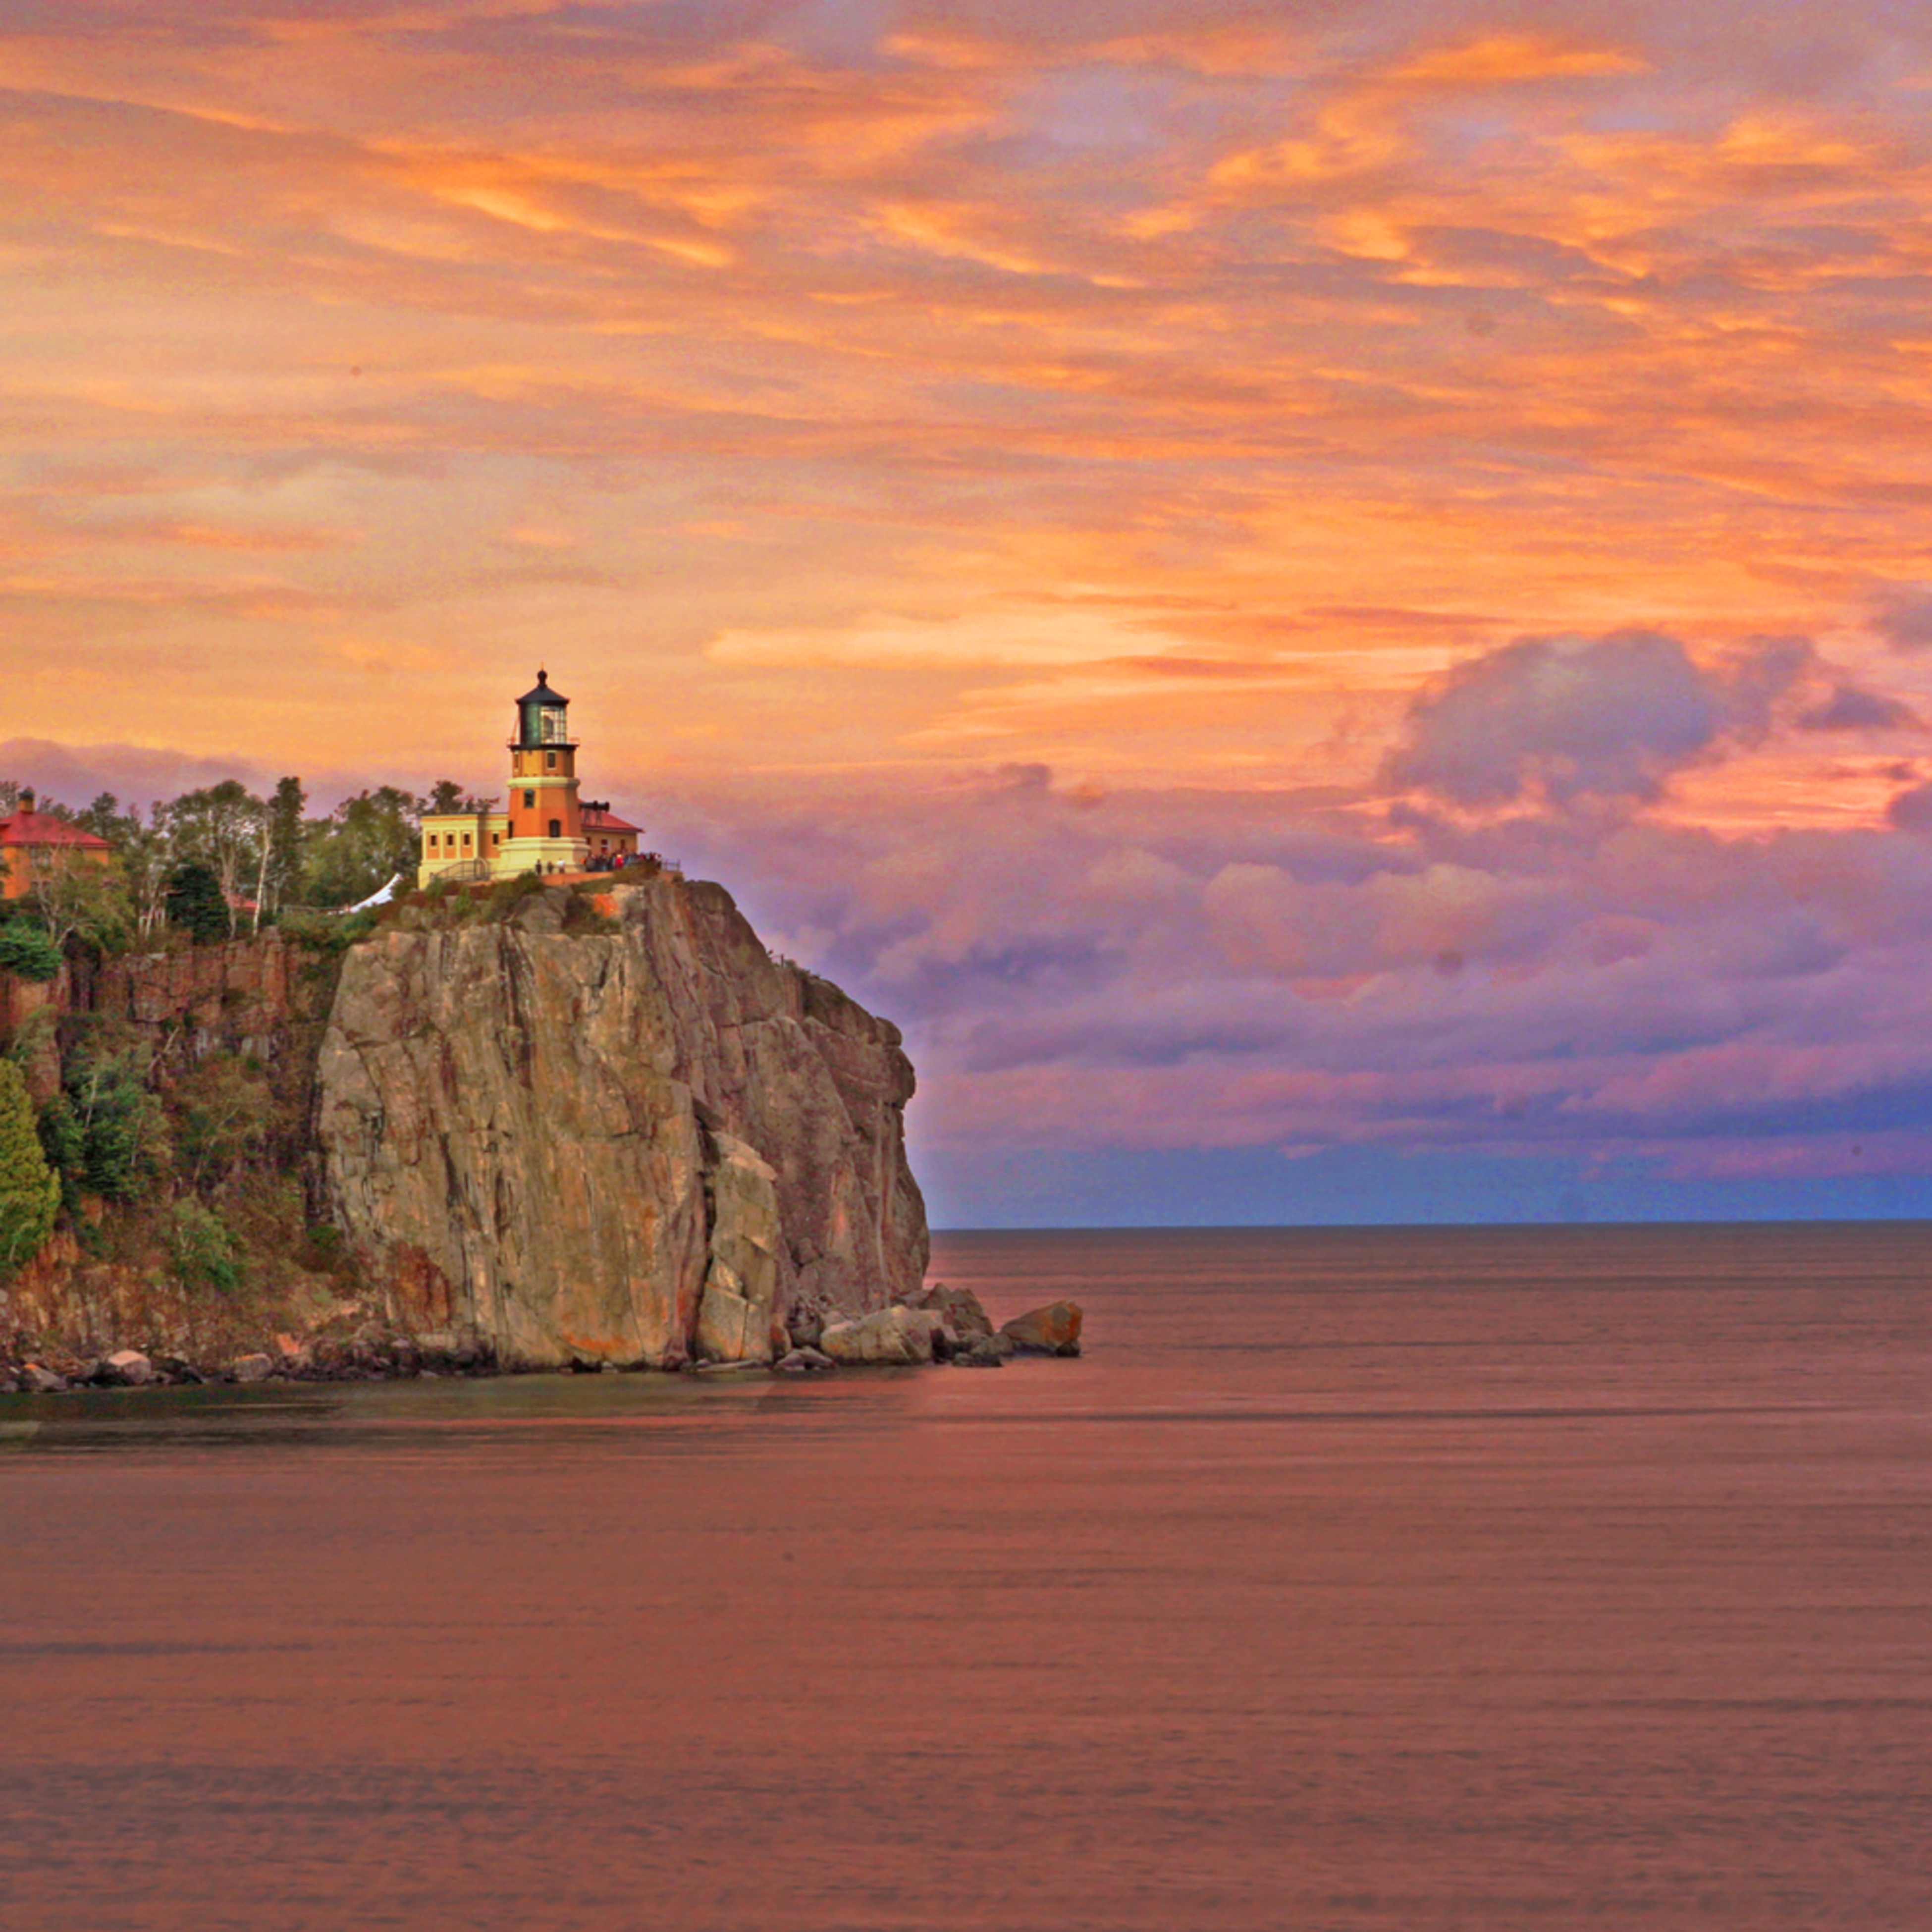 Sunset at split rock lighthouse wjgjub